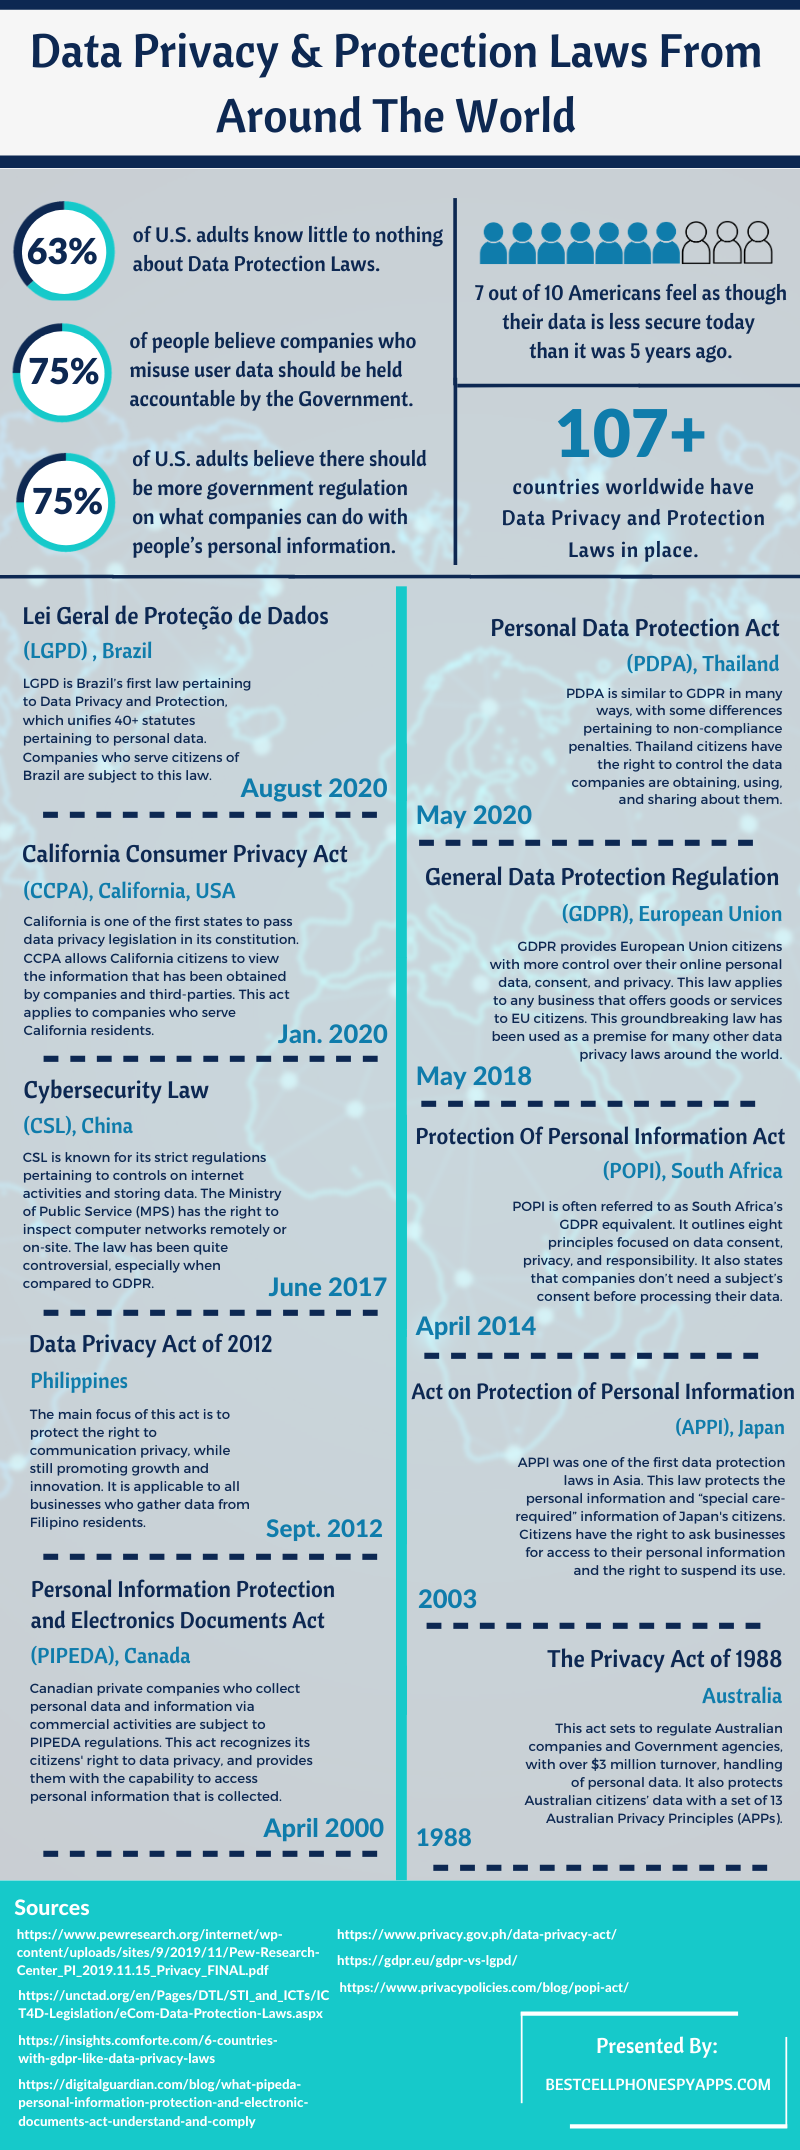 Data Privacy & Protection Laws From Around The World #infographic